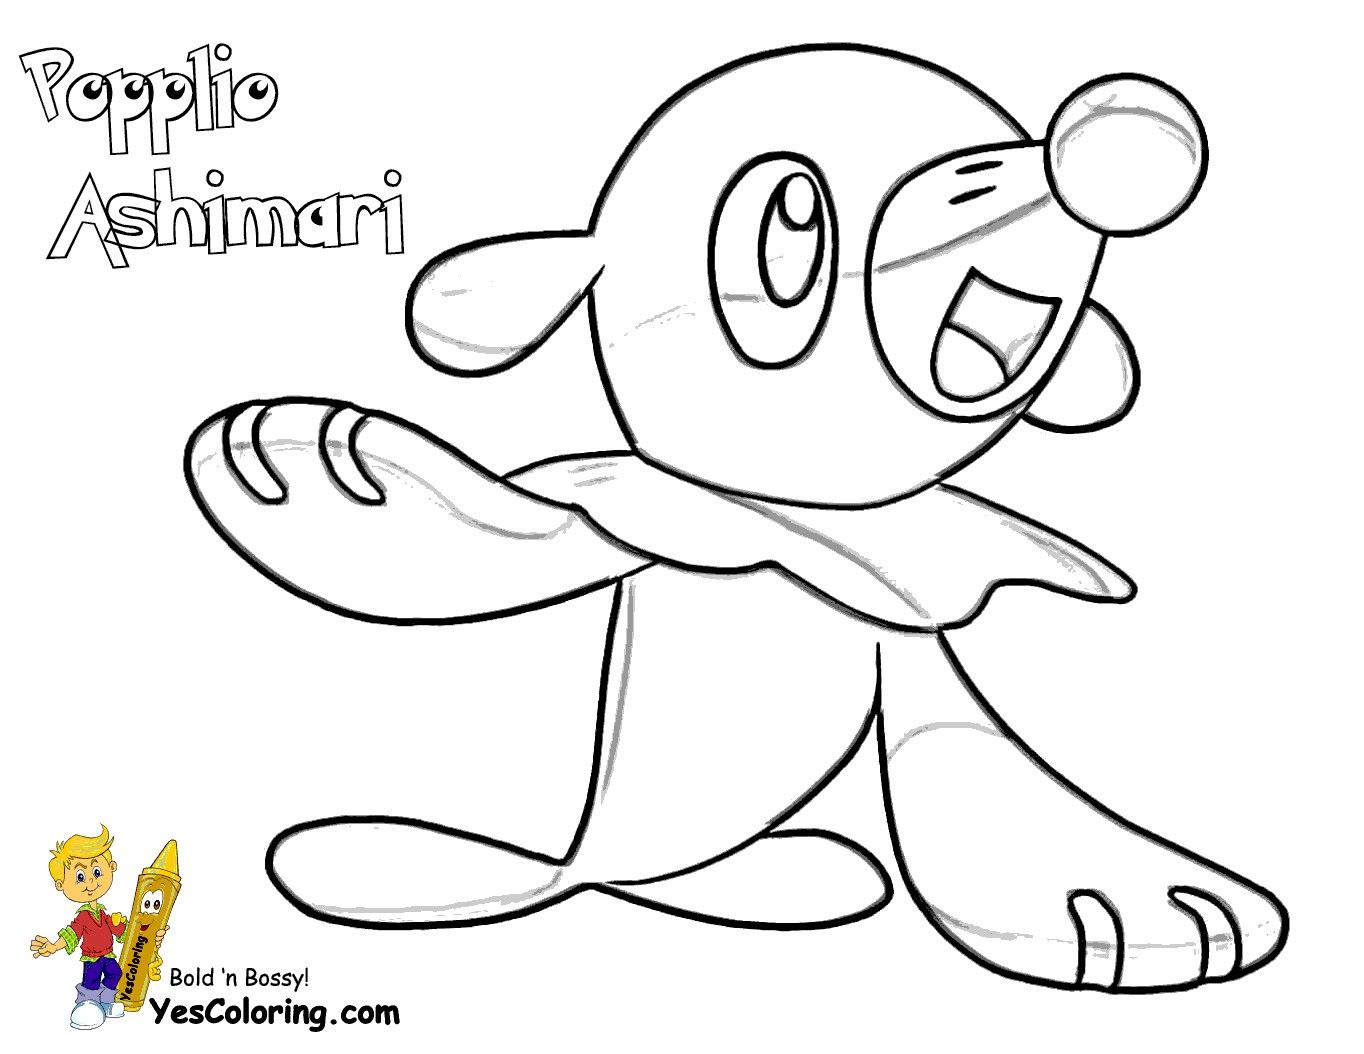 Pokemon Coloring Pages Popplio From The Thousand Photos On The Net With Regards To Pokemon Colori Moon Coloring Pages Pokemon Coloring Pokemon Coloring Pages